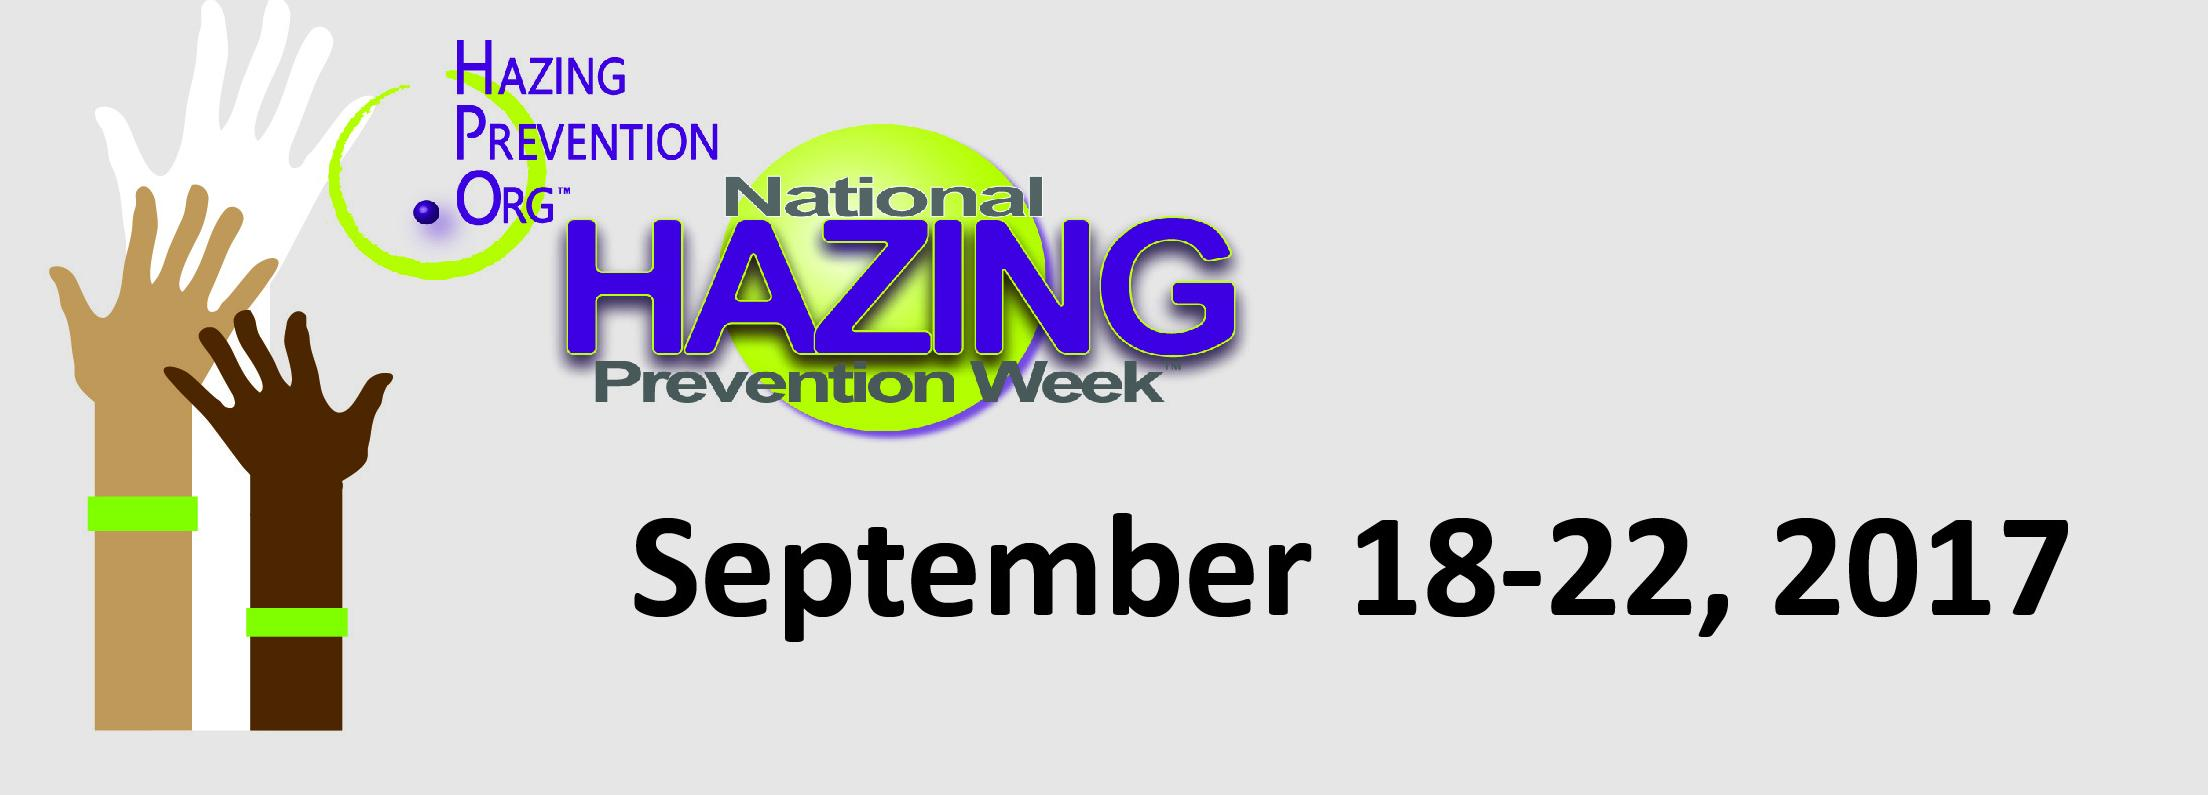 HazingPrevention.org logo featuring the dates of National hazing prevention week from September 18-22, 2017